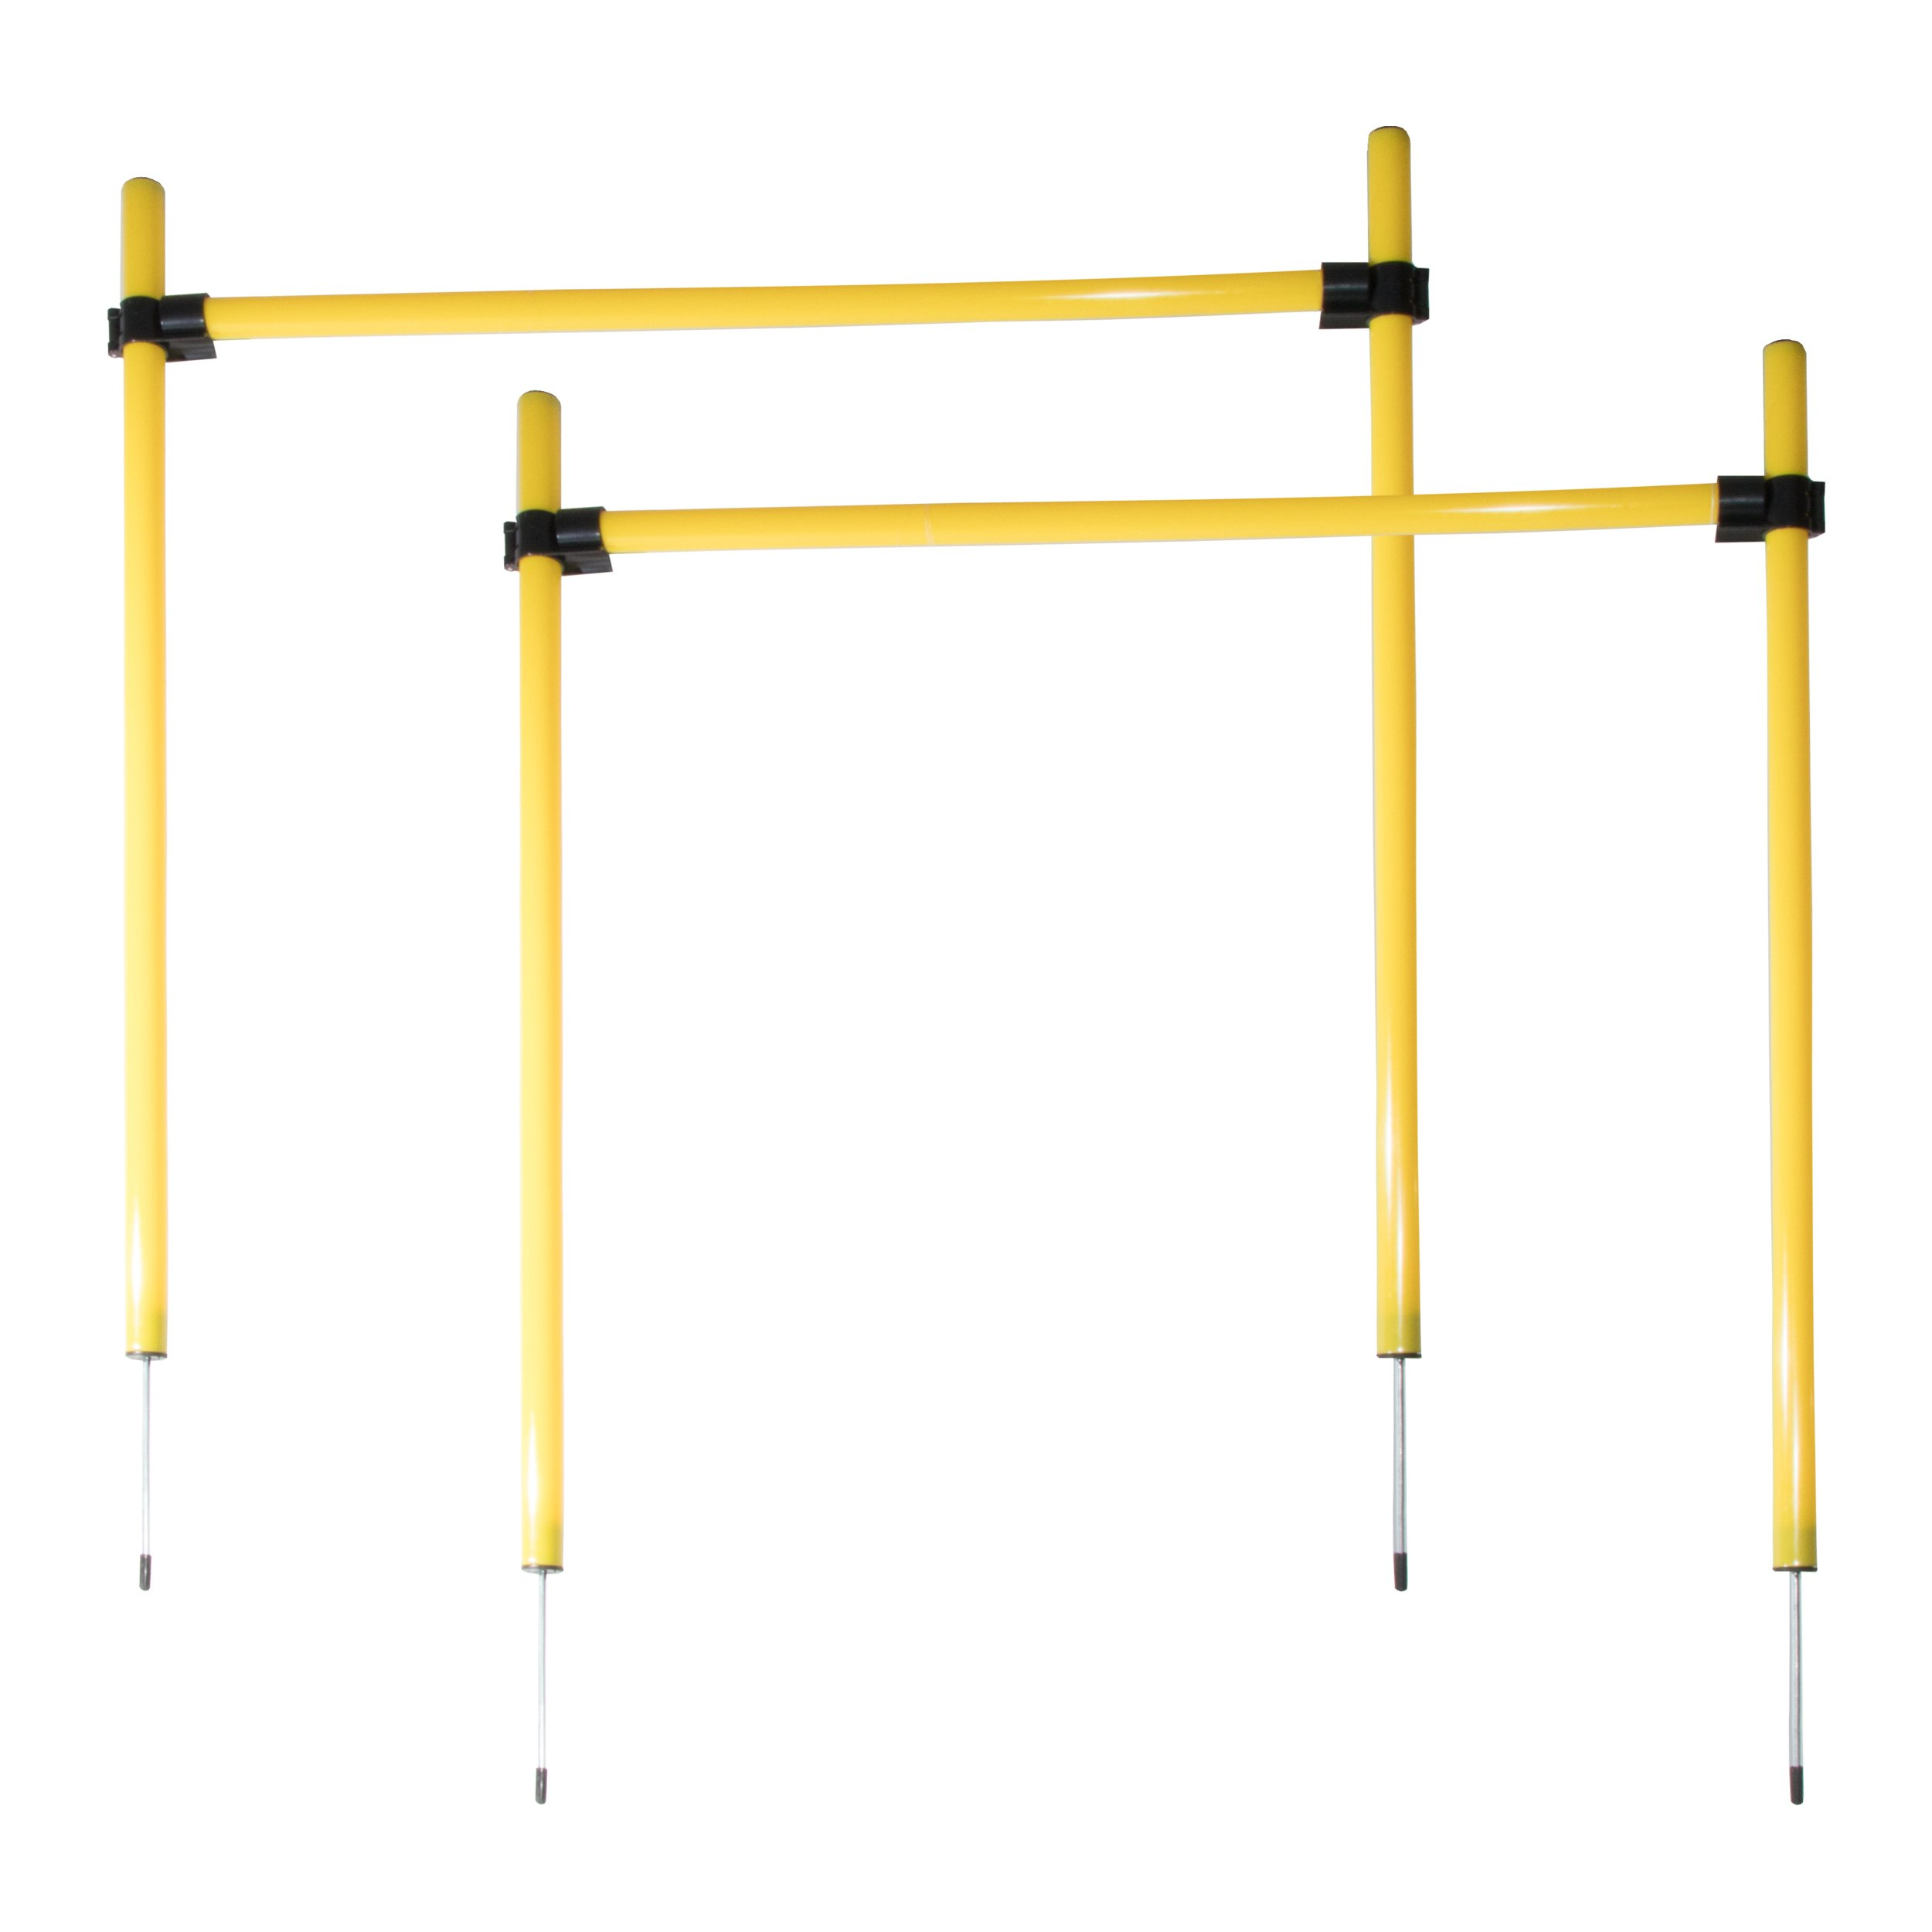 Pet Life TR2DG Jumping Hurdle Outdoor Performance Agility Pet Dog Training Kit, One Size, Green and Yellow by Pet Life